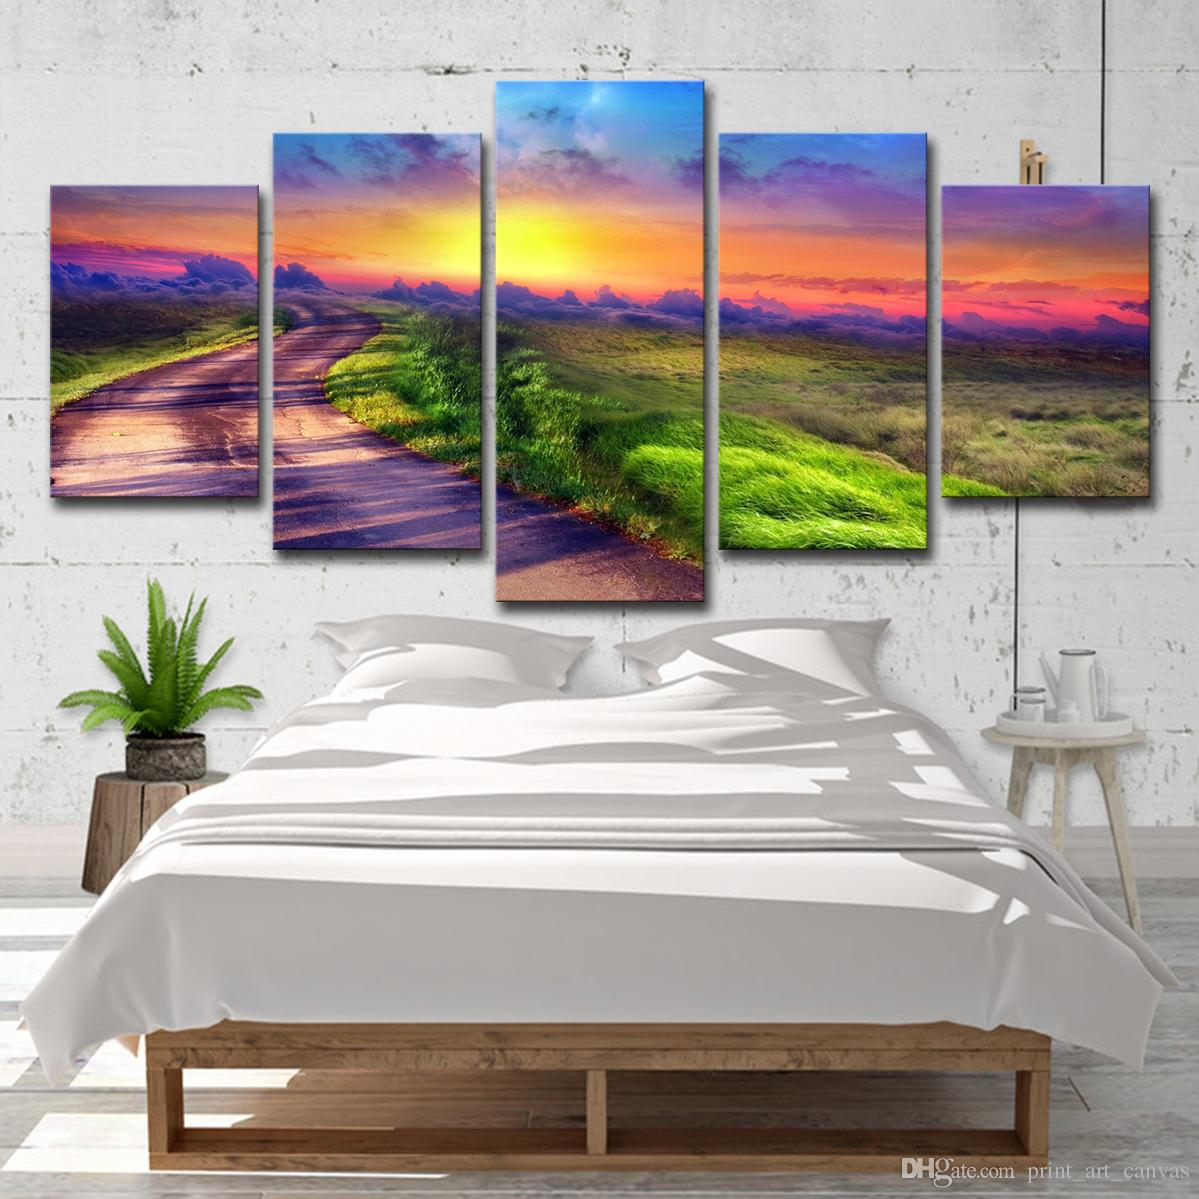 Hd printed picture large canvas painting for bedroom 5 pieces sunrise landscape living room home wall art decoration